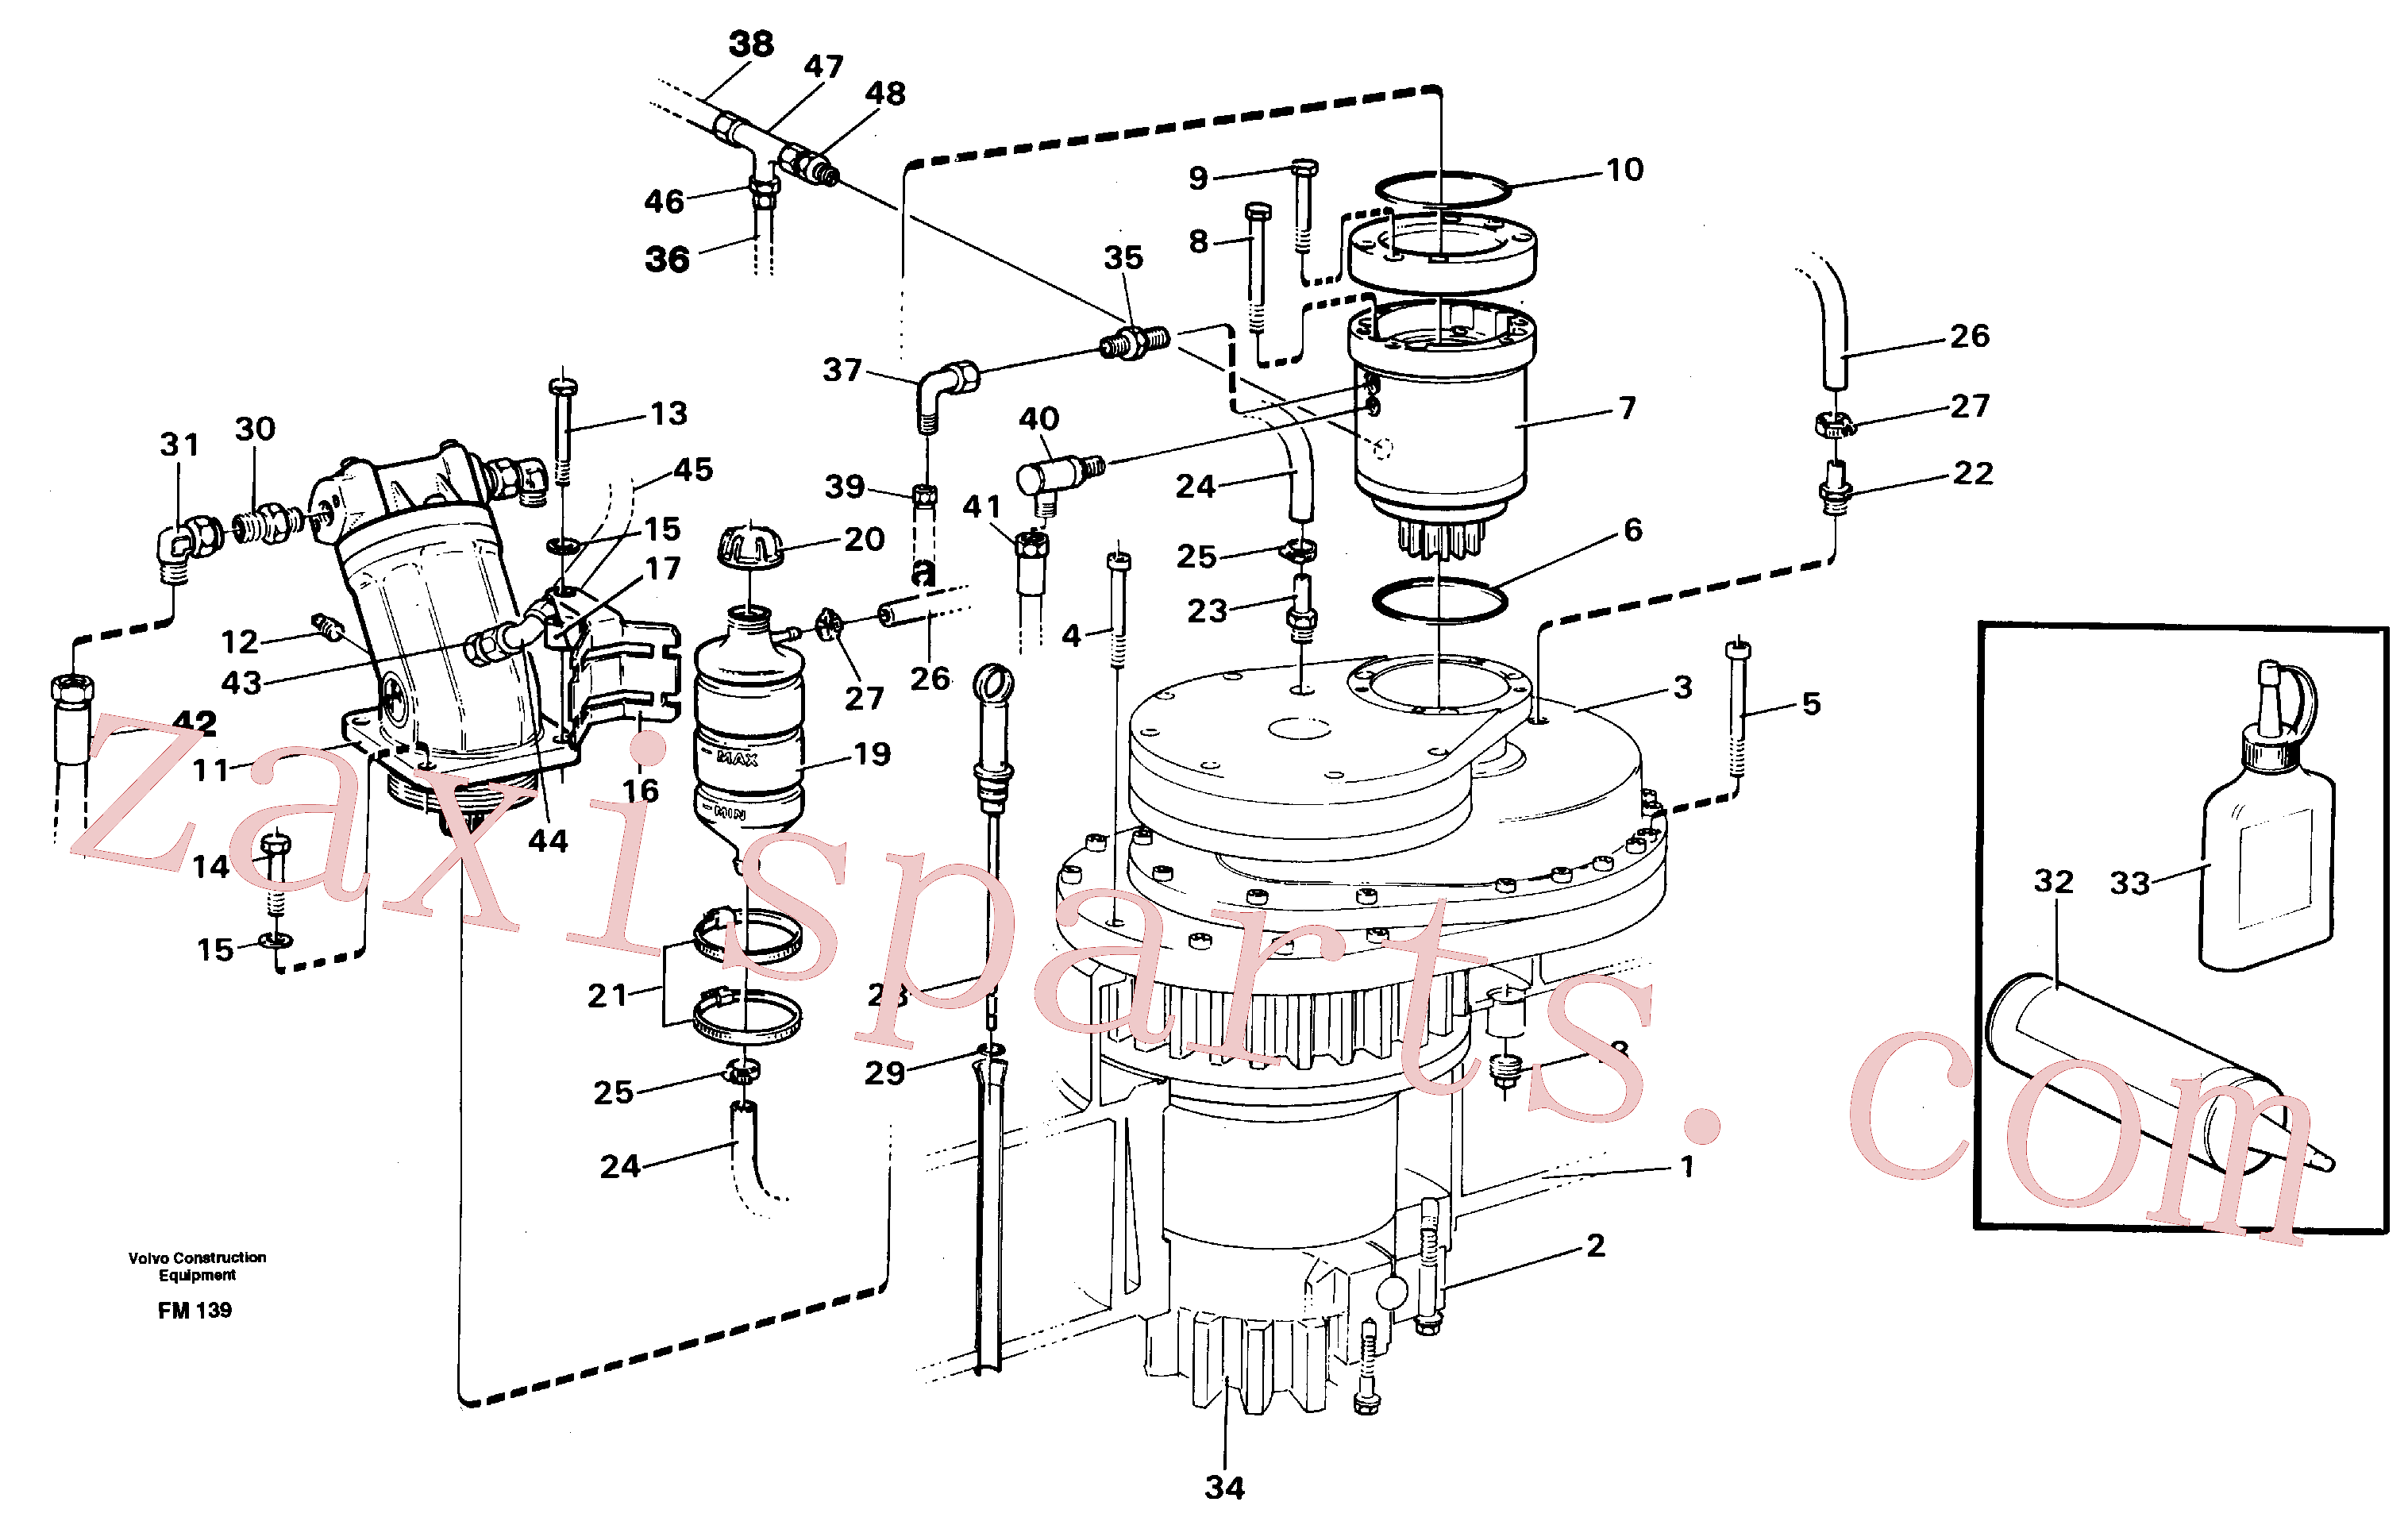 VOE14016813 for Volvo Superstructure with slew transmission(FM139 assembly)